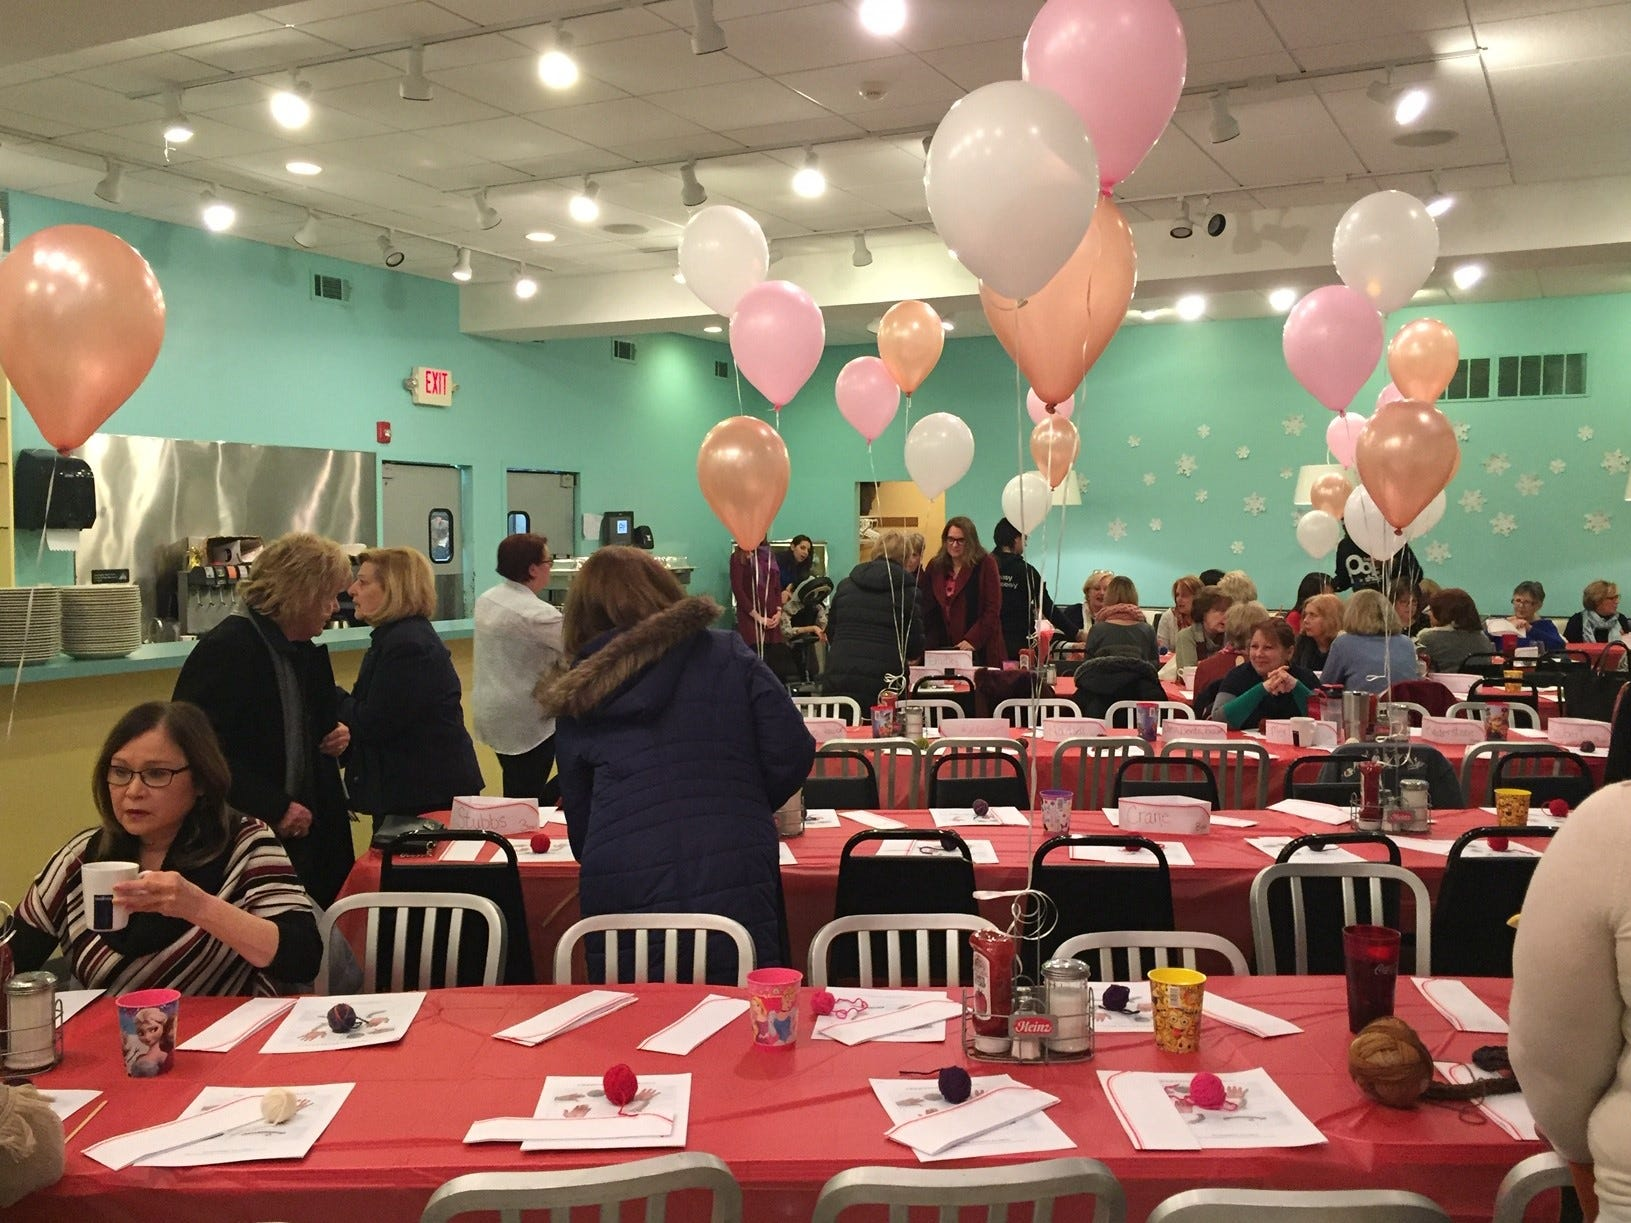 Guests arrive at the Galentine's Celebration at The Pop Shop in Collingswood.